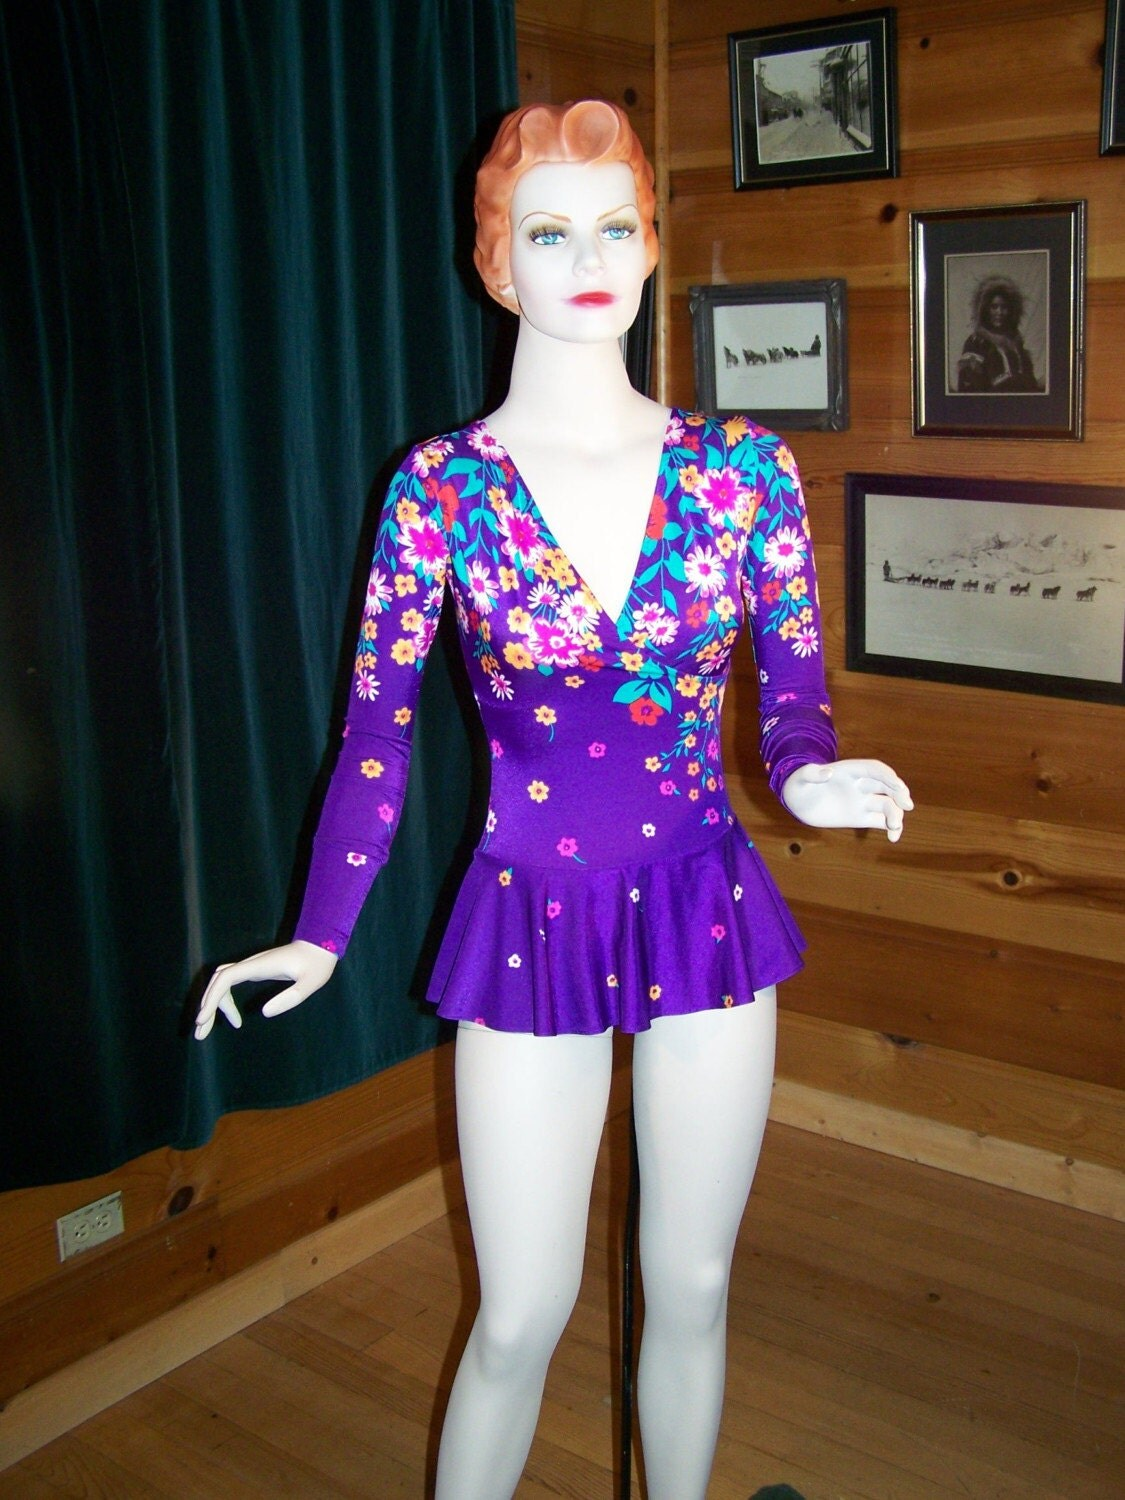 Vintage 70s Skating Costume Outfit Purple Floral with Skirt